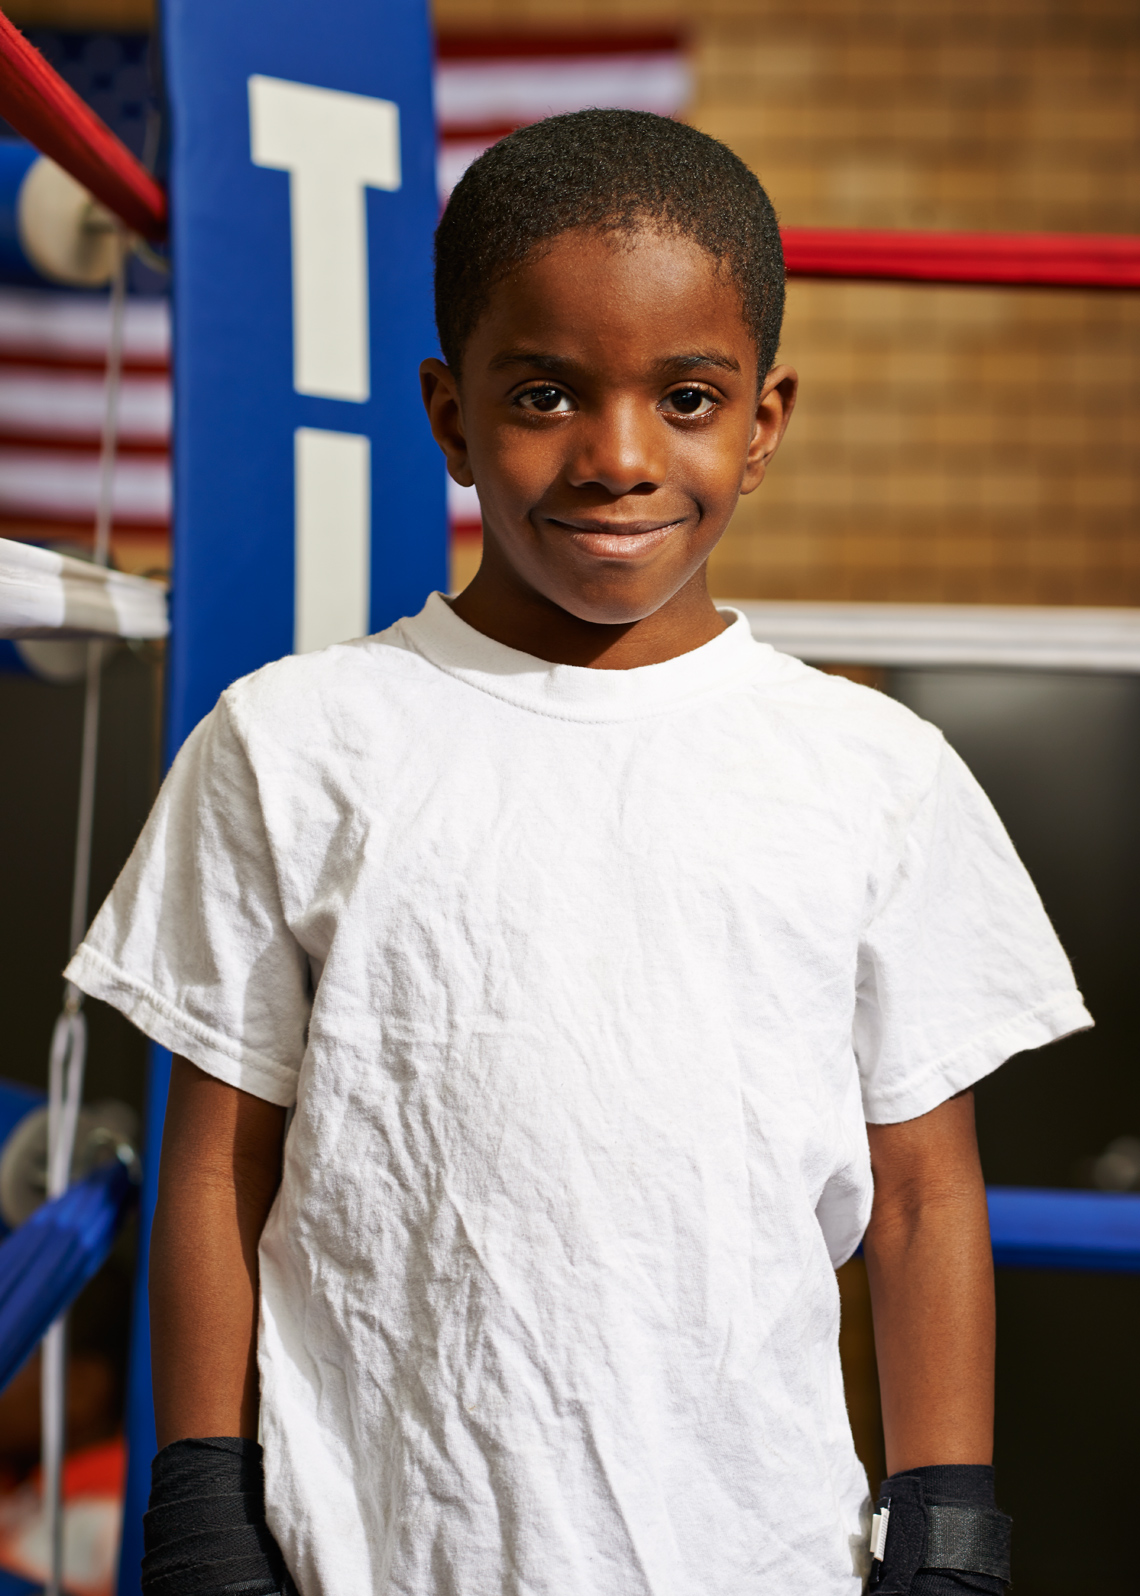 Cute African American Boy in a white tee shirt